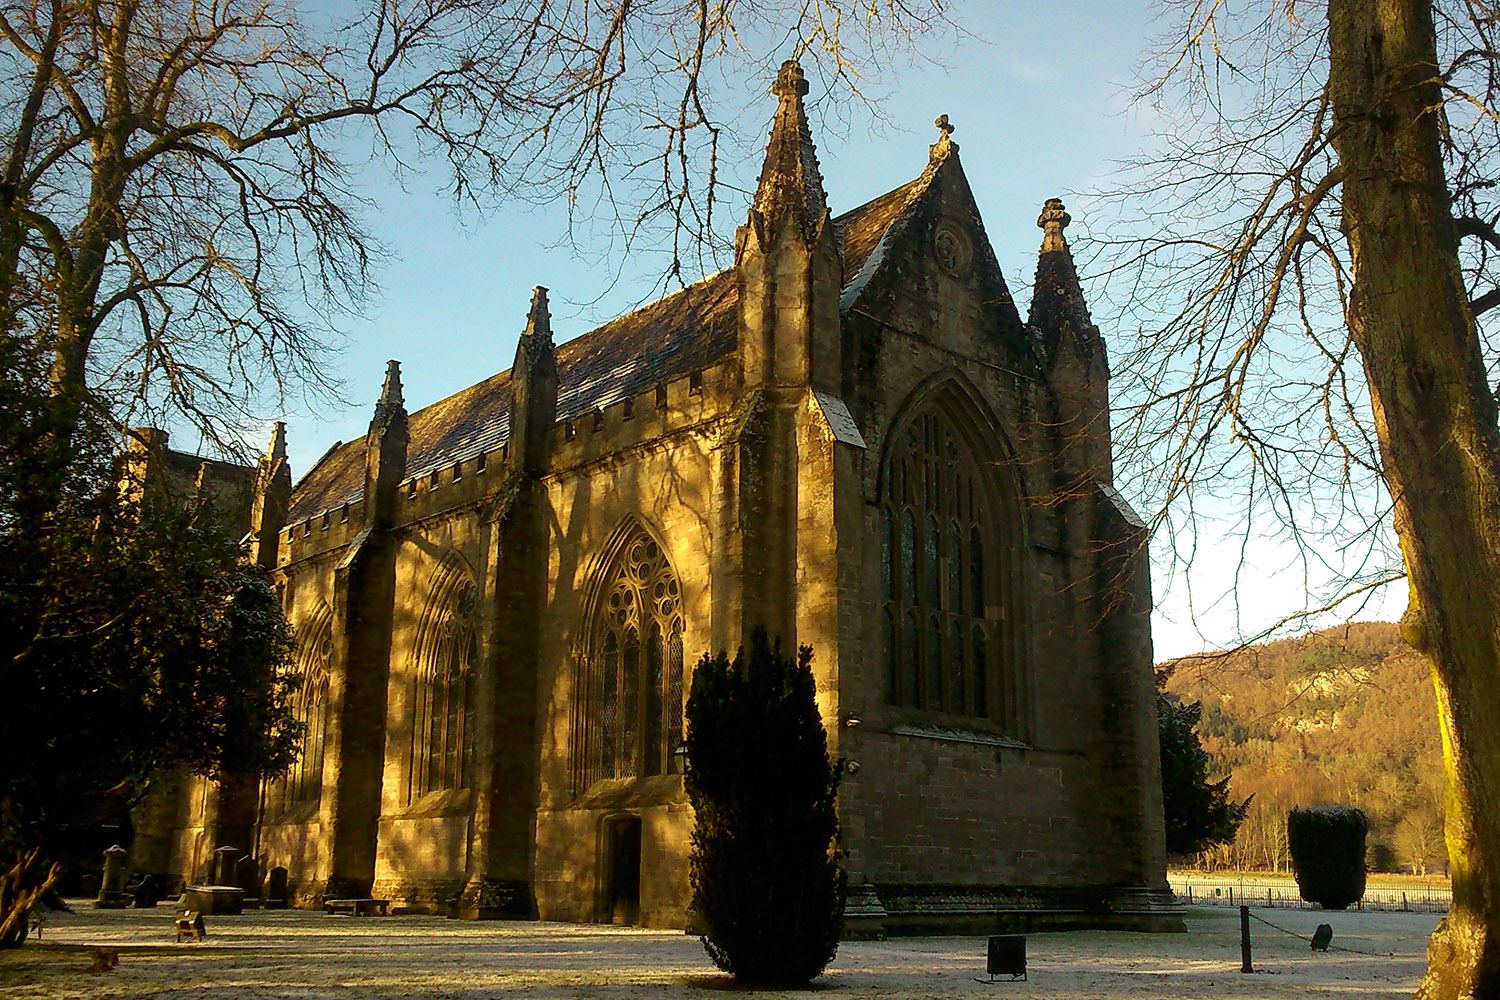 Dunkeld Cathedral in Perthshire is a highlight of our Highlander tour of Scotland